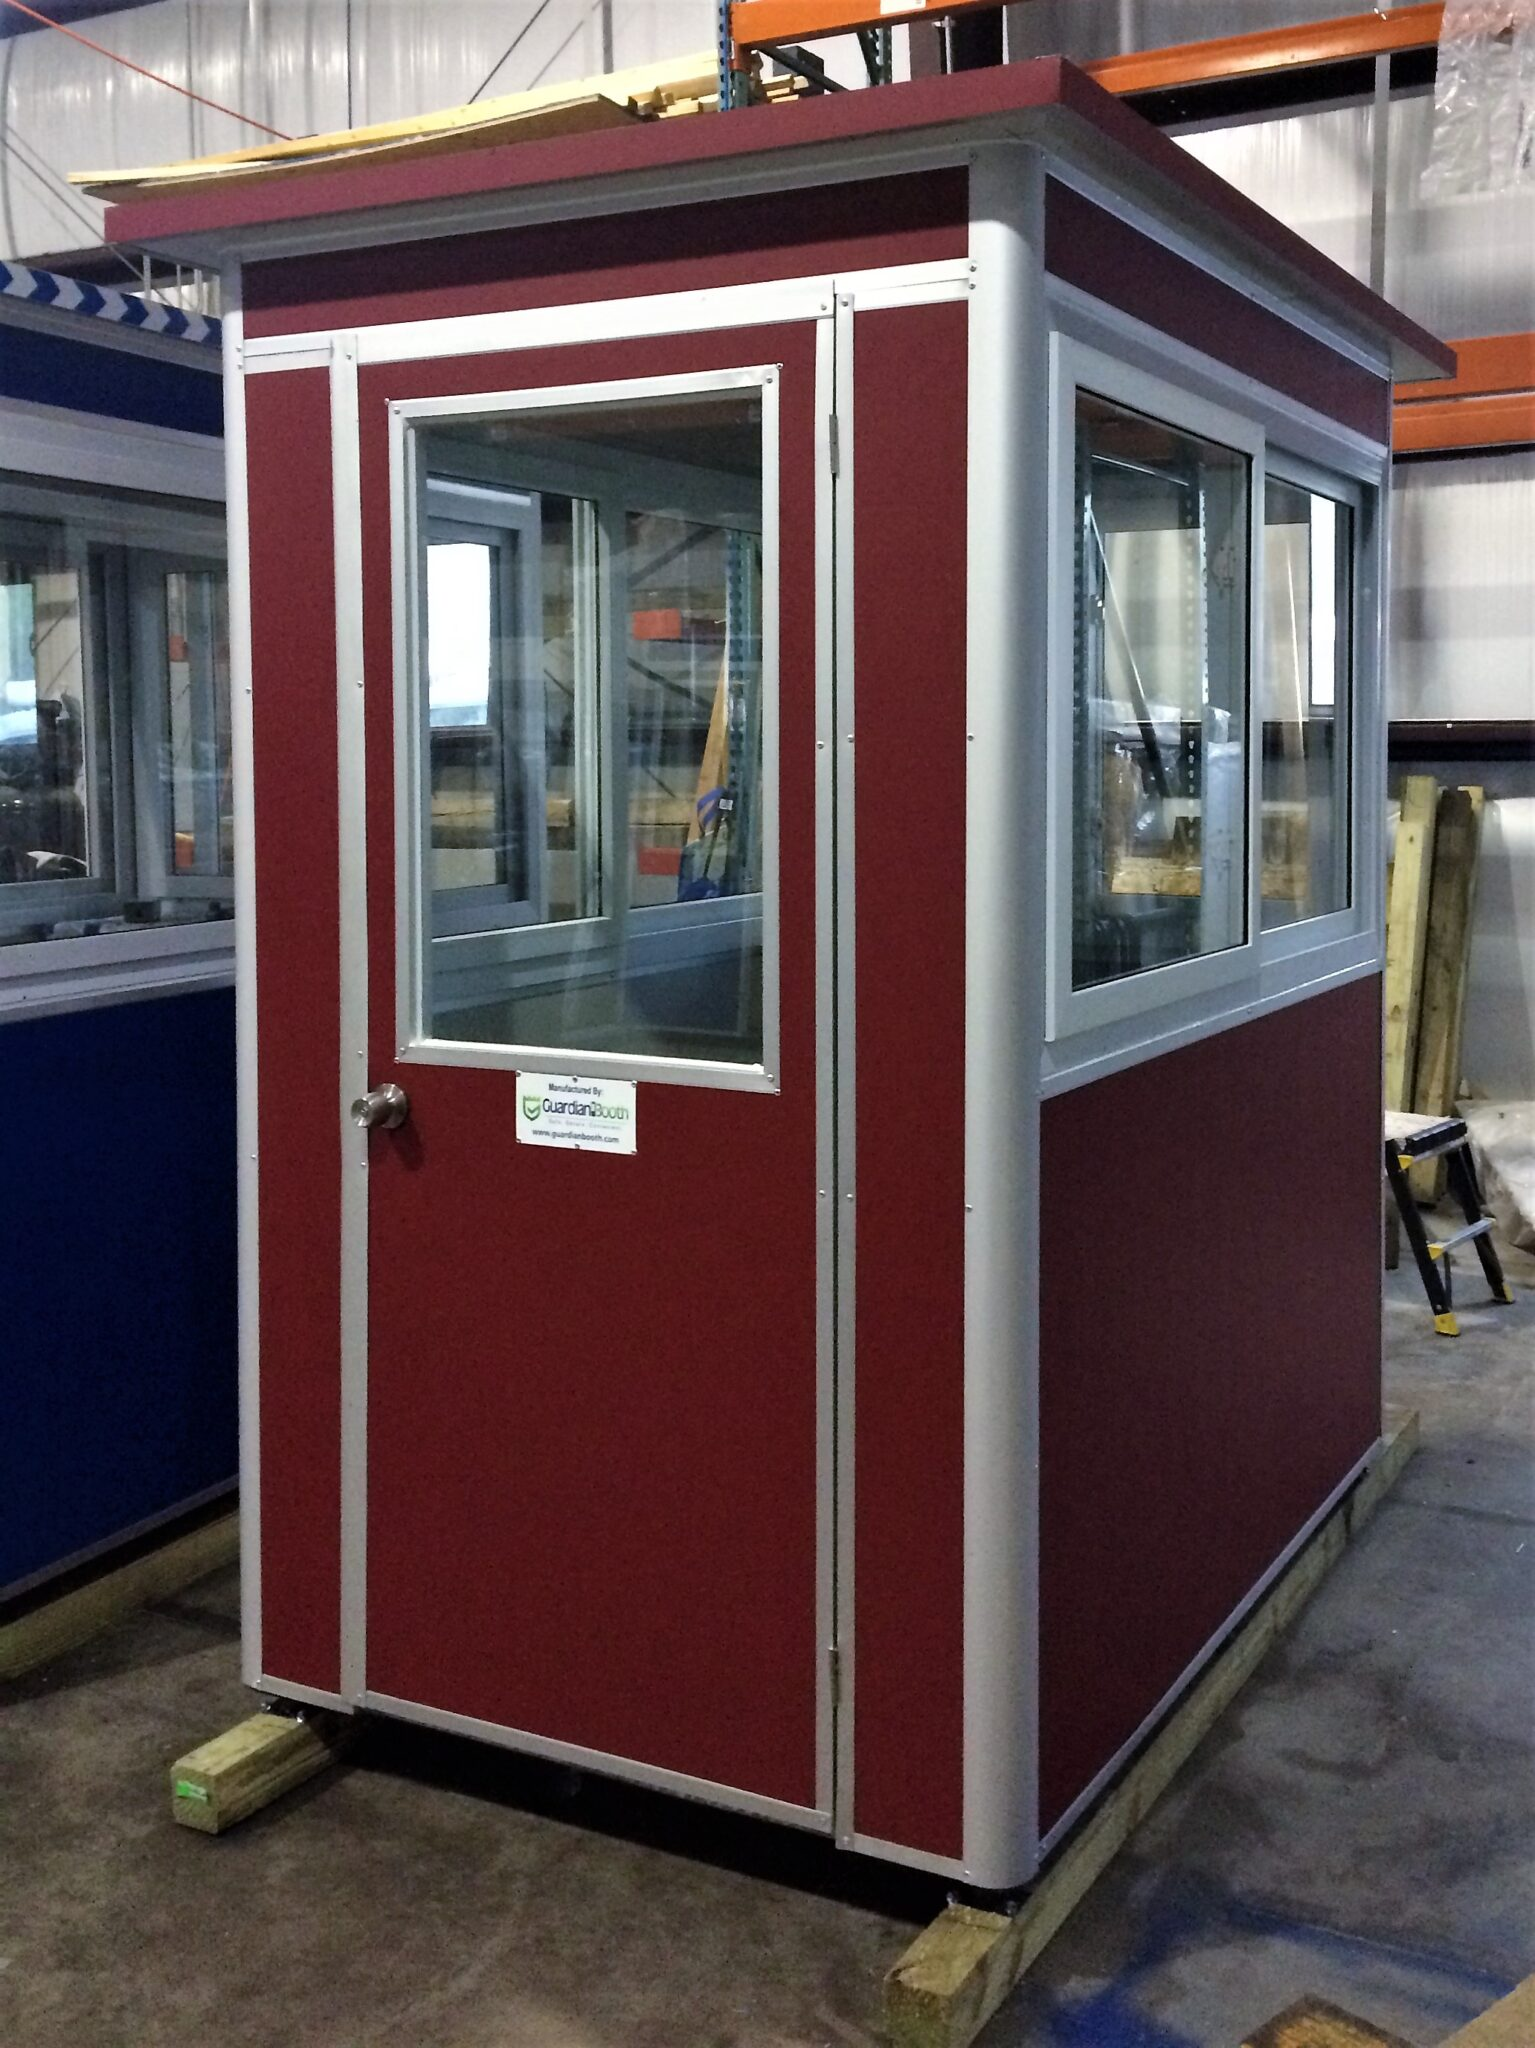 4x6 Security Guard Booth in Englewood, NJ with Custom Exterior Color, Baseboard Heaters, Builtin AC, and Breaker Panel Box